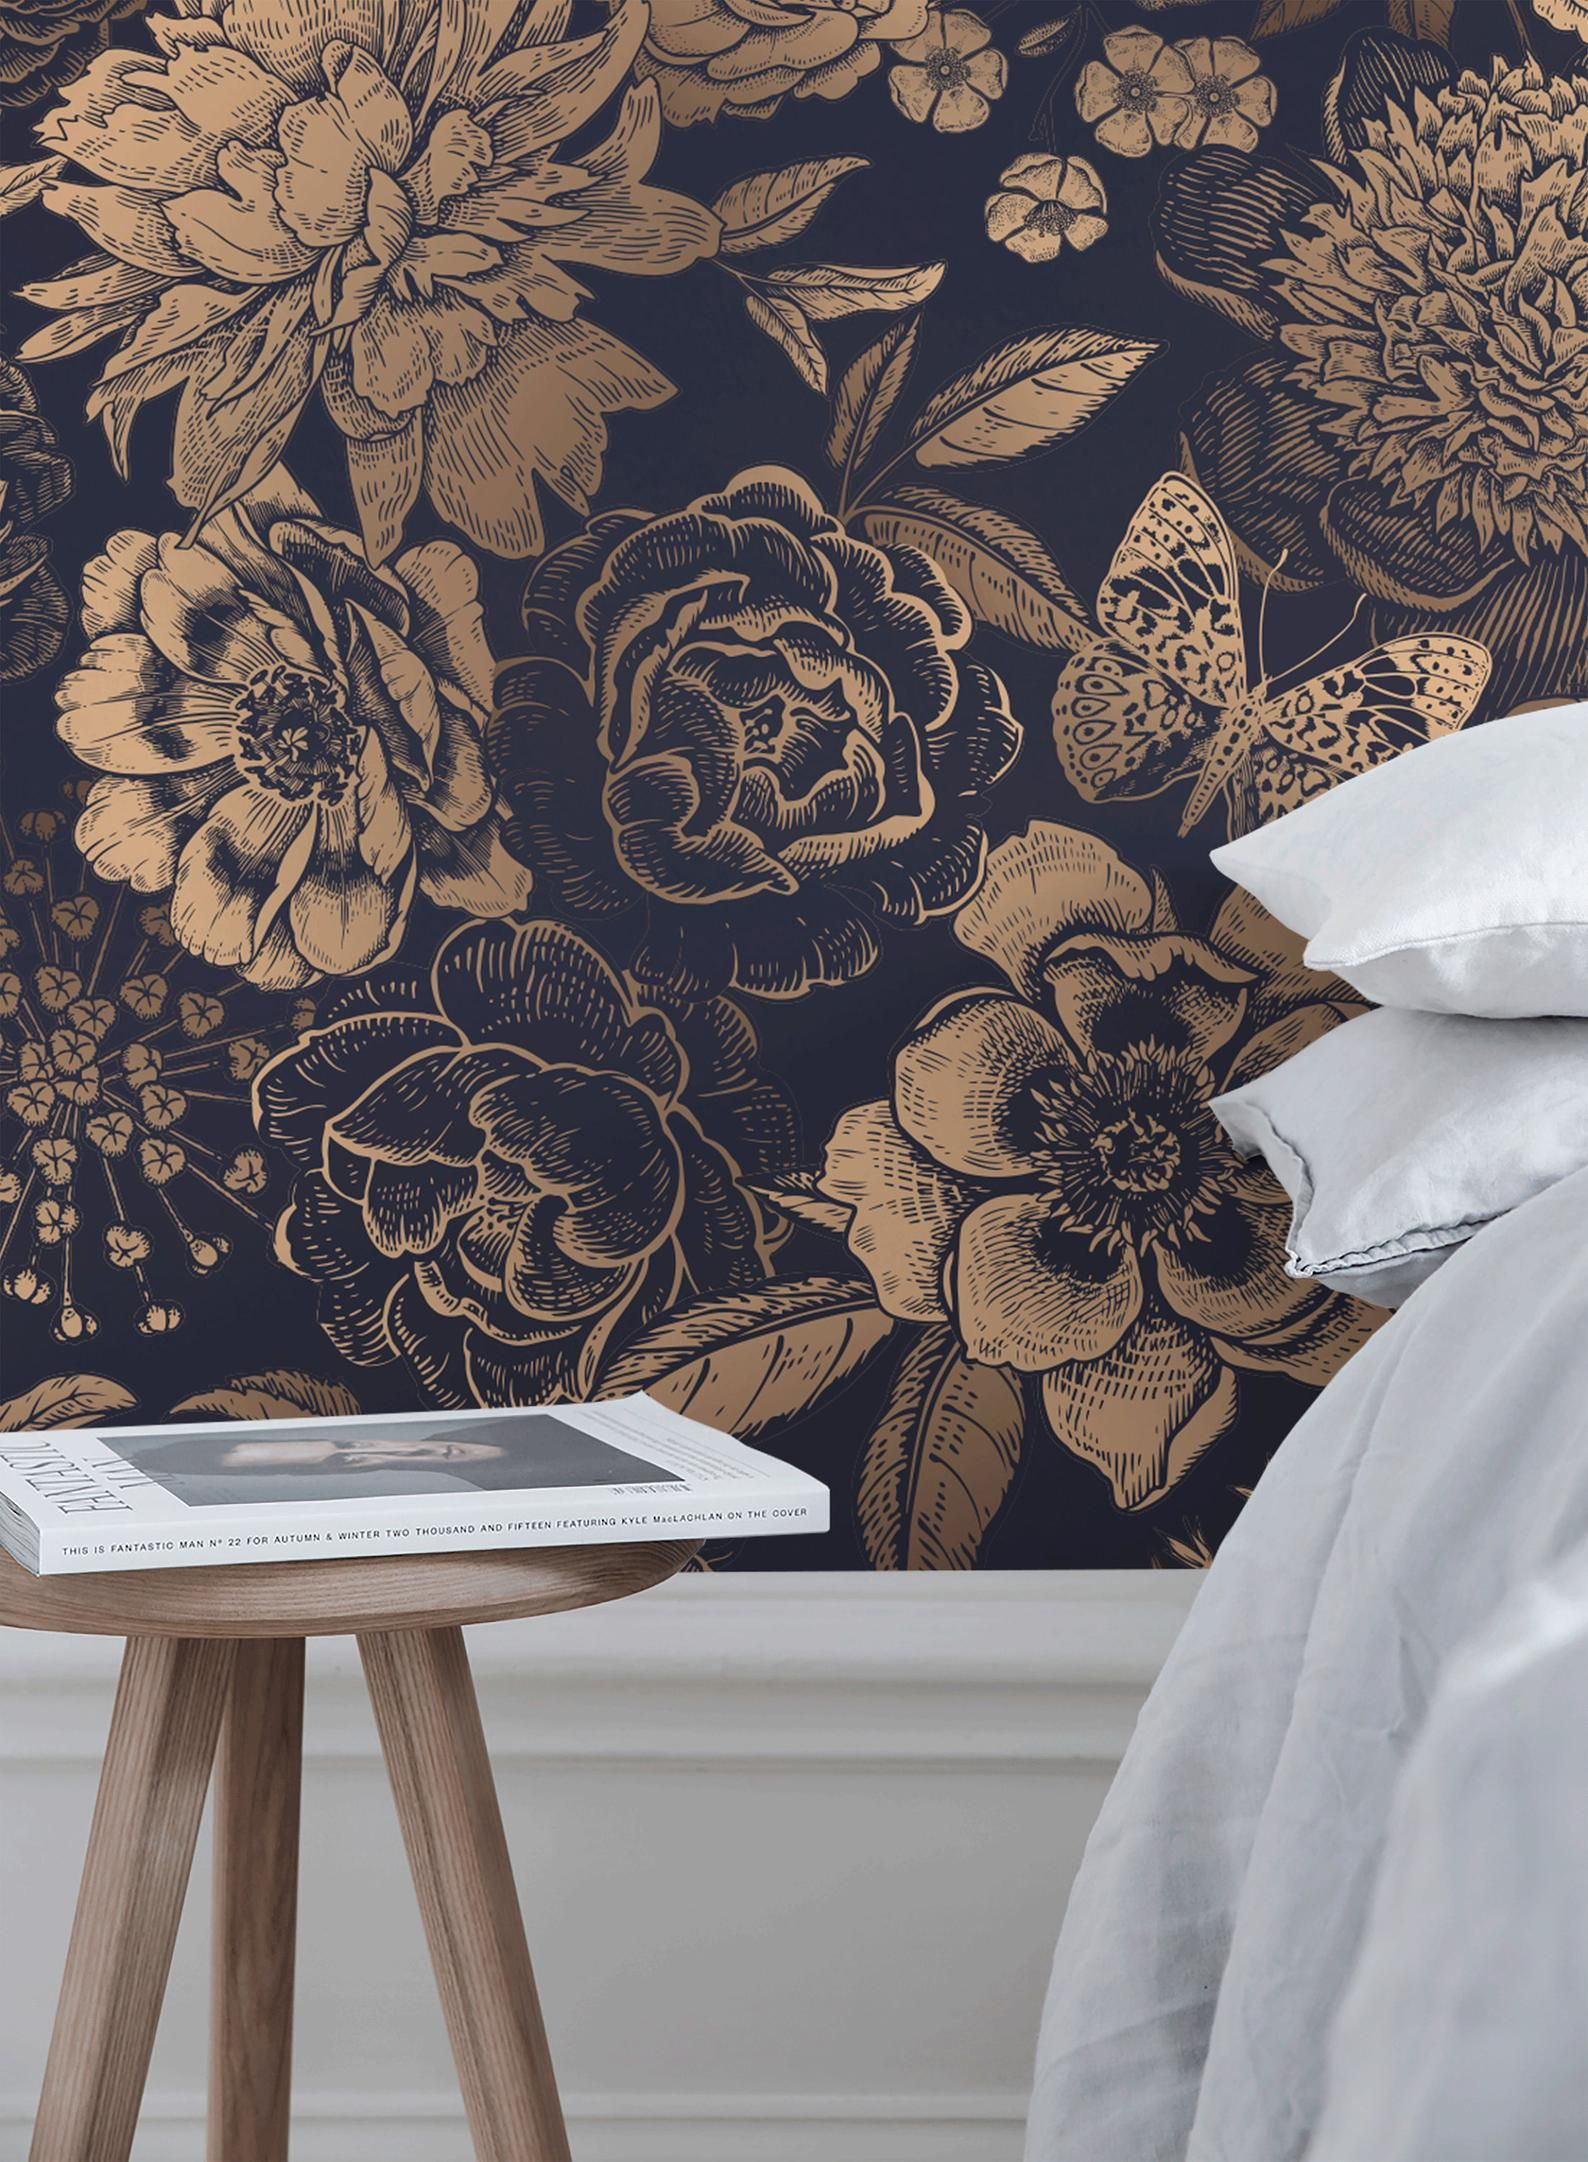 Removable Wallpaper Peel And Stick Wallpaper Wall Paper Wall Mural Vintage Flower Non Metalic Gold Color A922 Removable Wallpaper Peel And Stick Wallpaper Wall Wallpaper